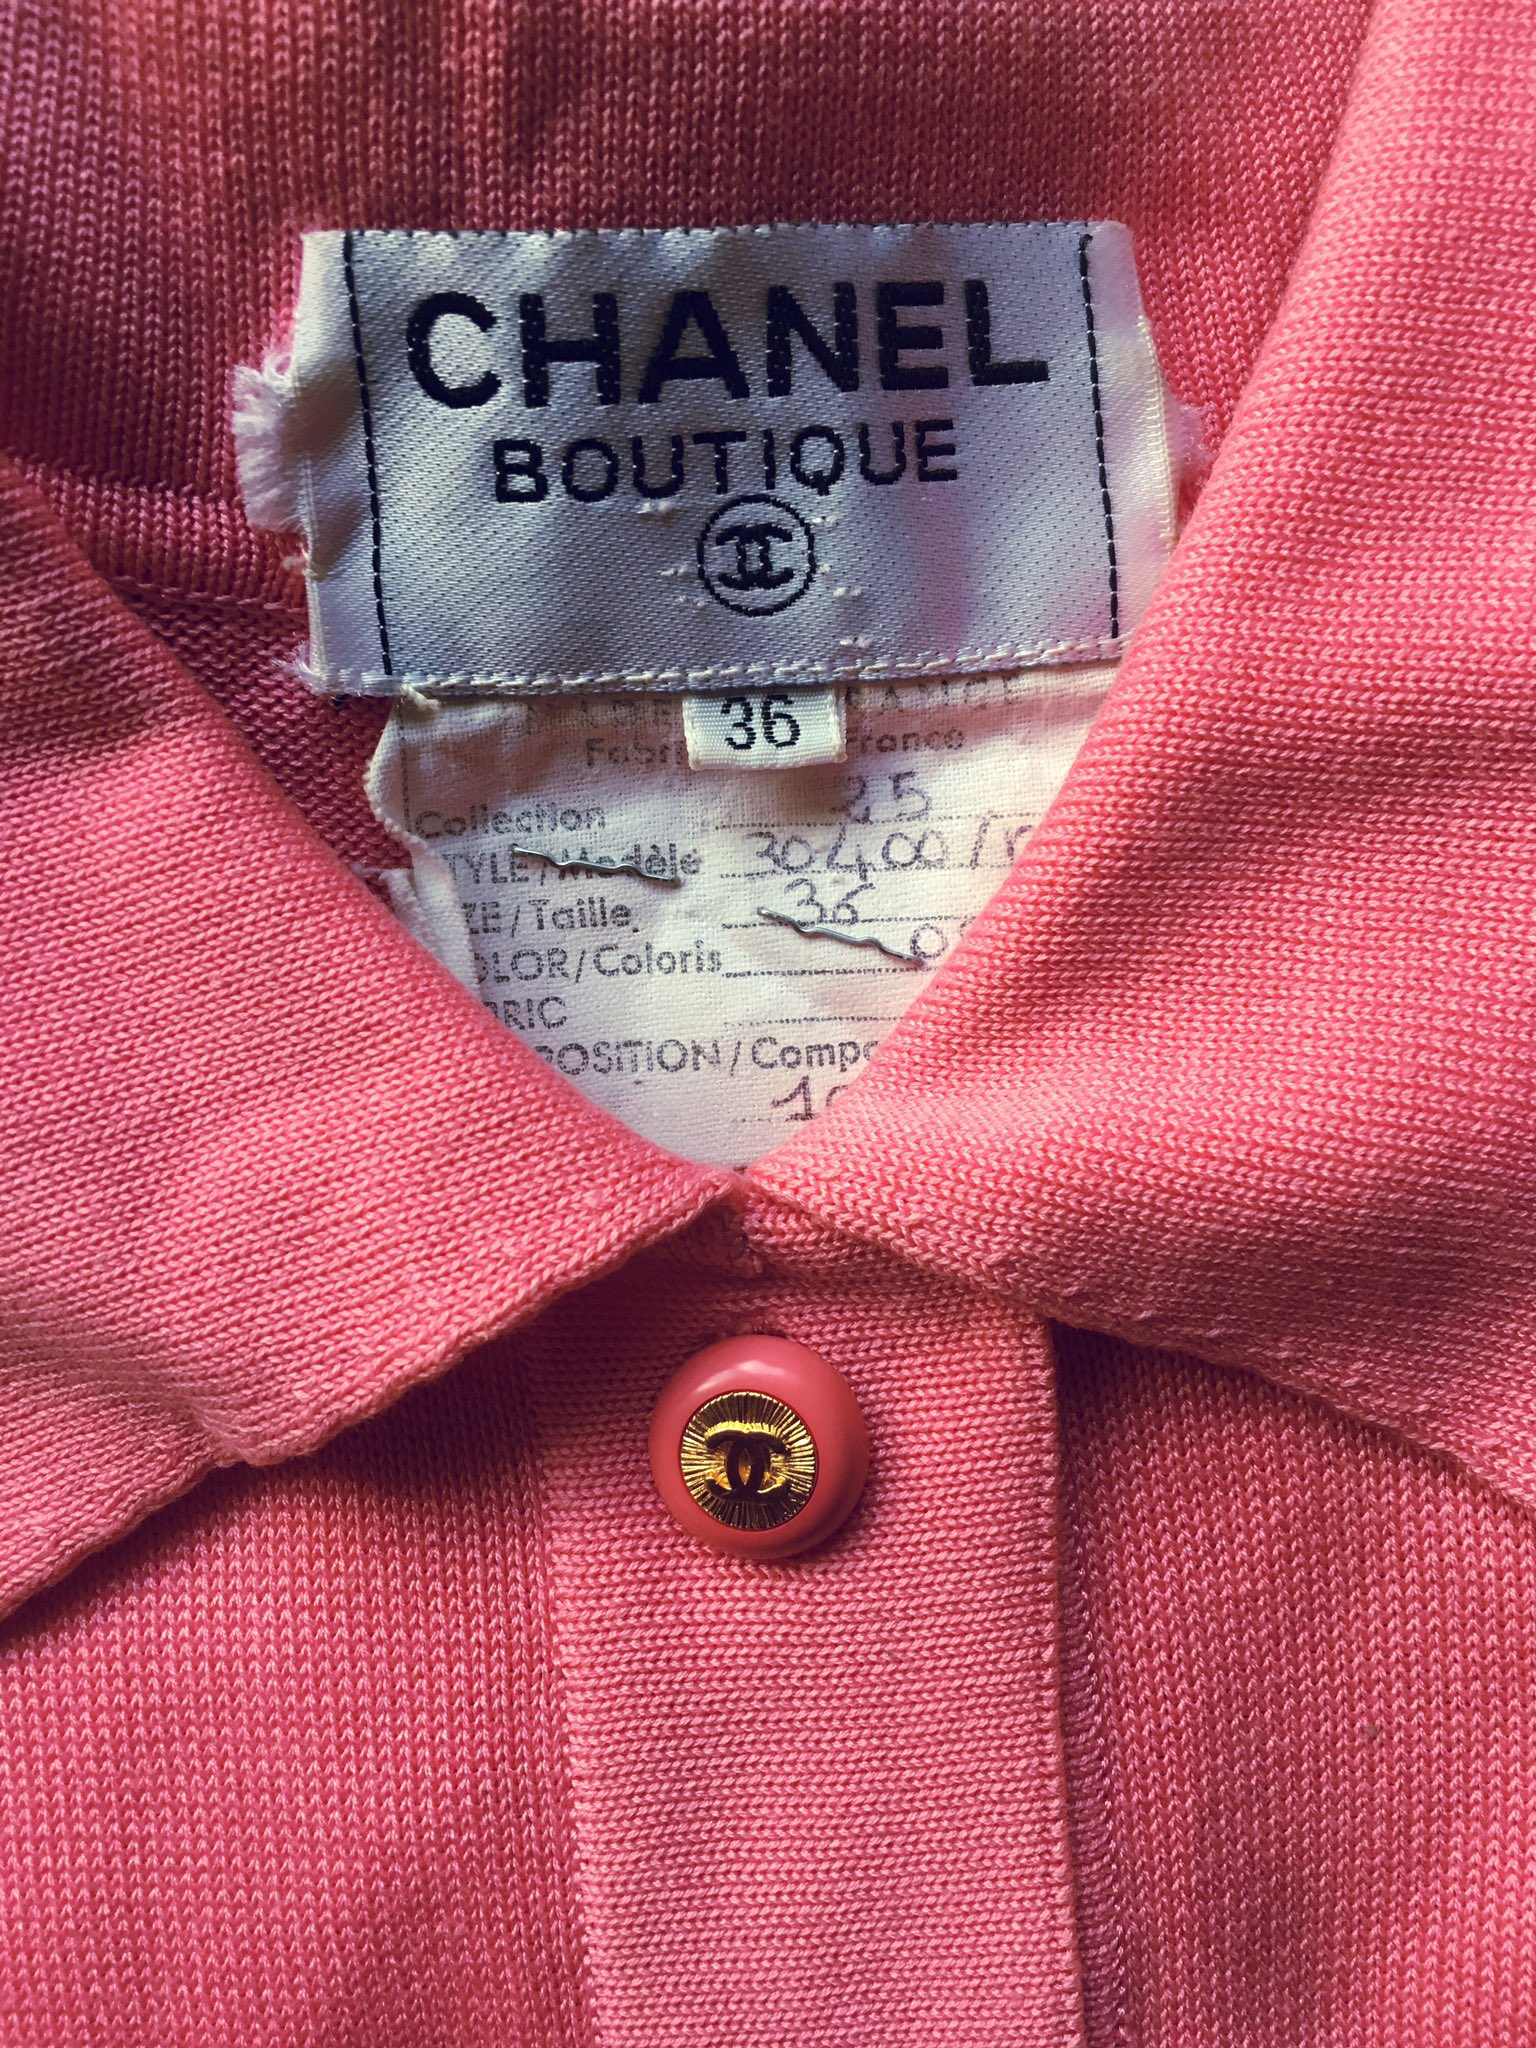 New vintage piece, baby pink Chanel jumpsuit 😍 https://t.co/jrtFGNuasL